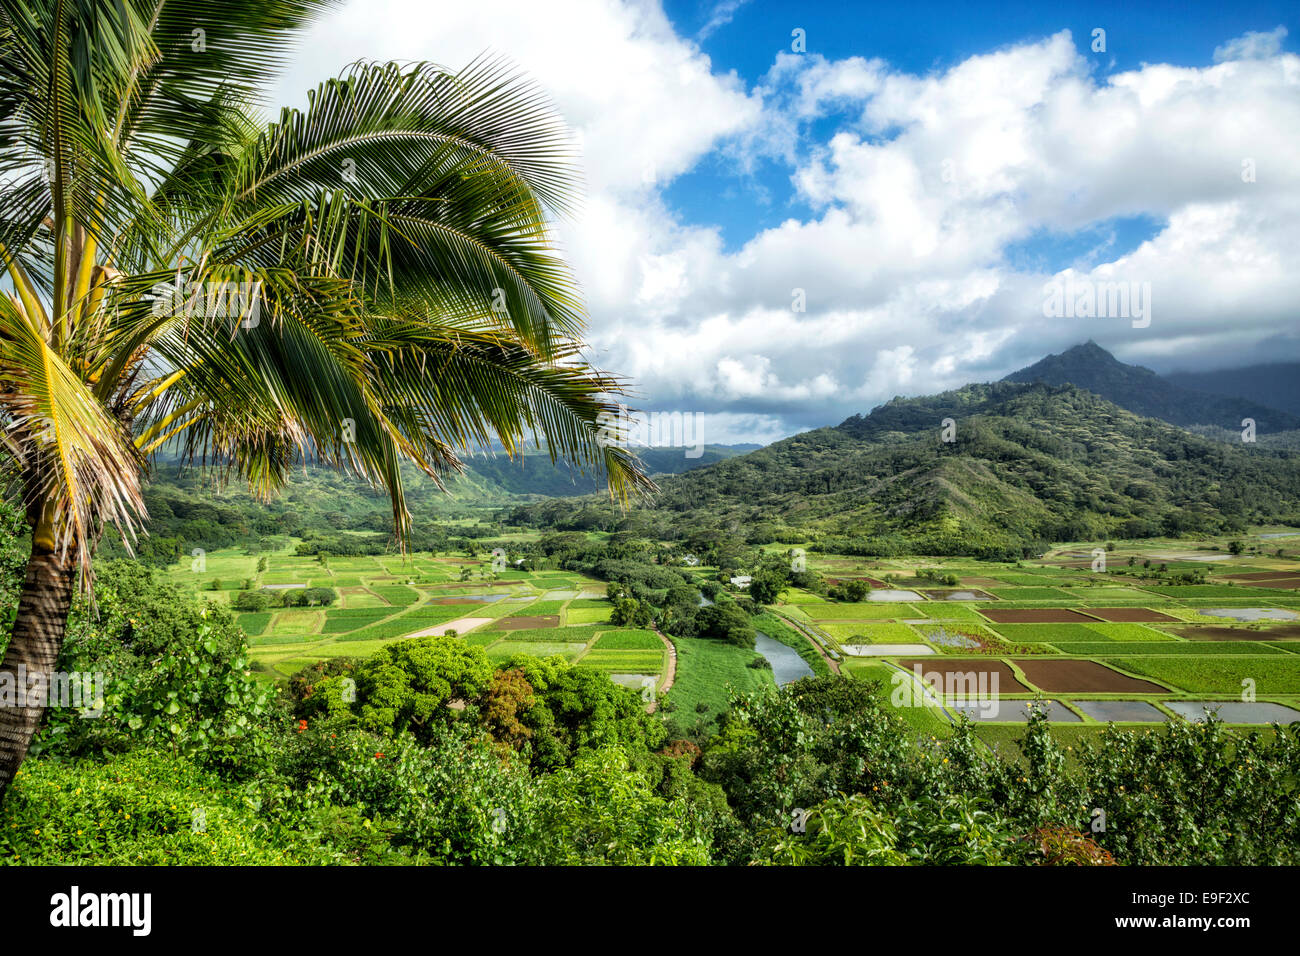 Nature scenery In Hanalei, Kauai - Stock Image